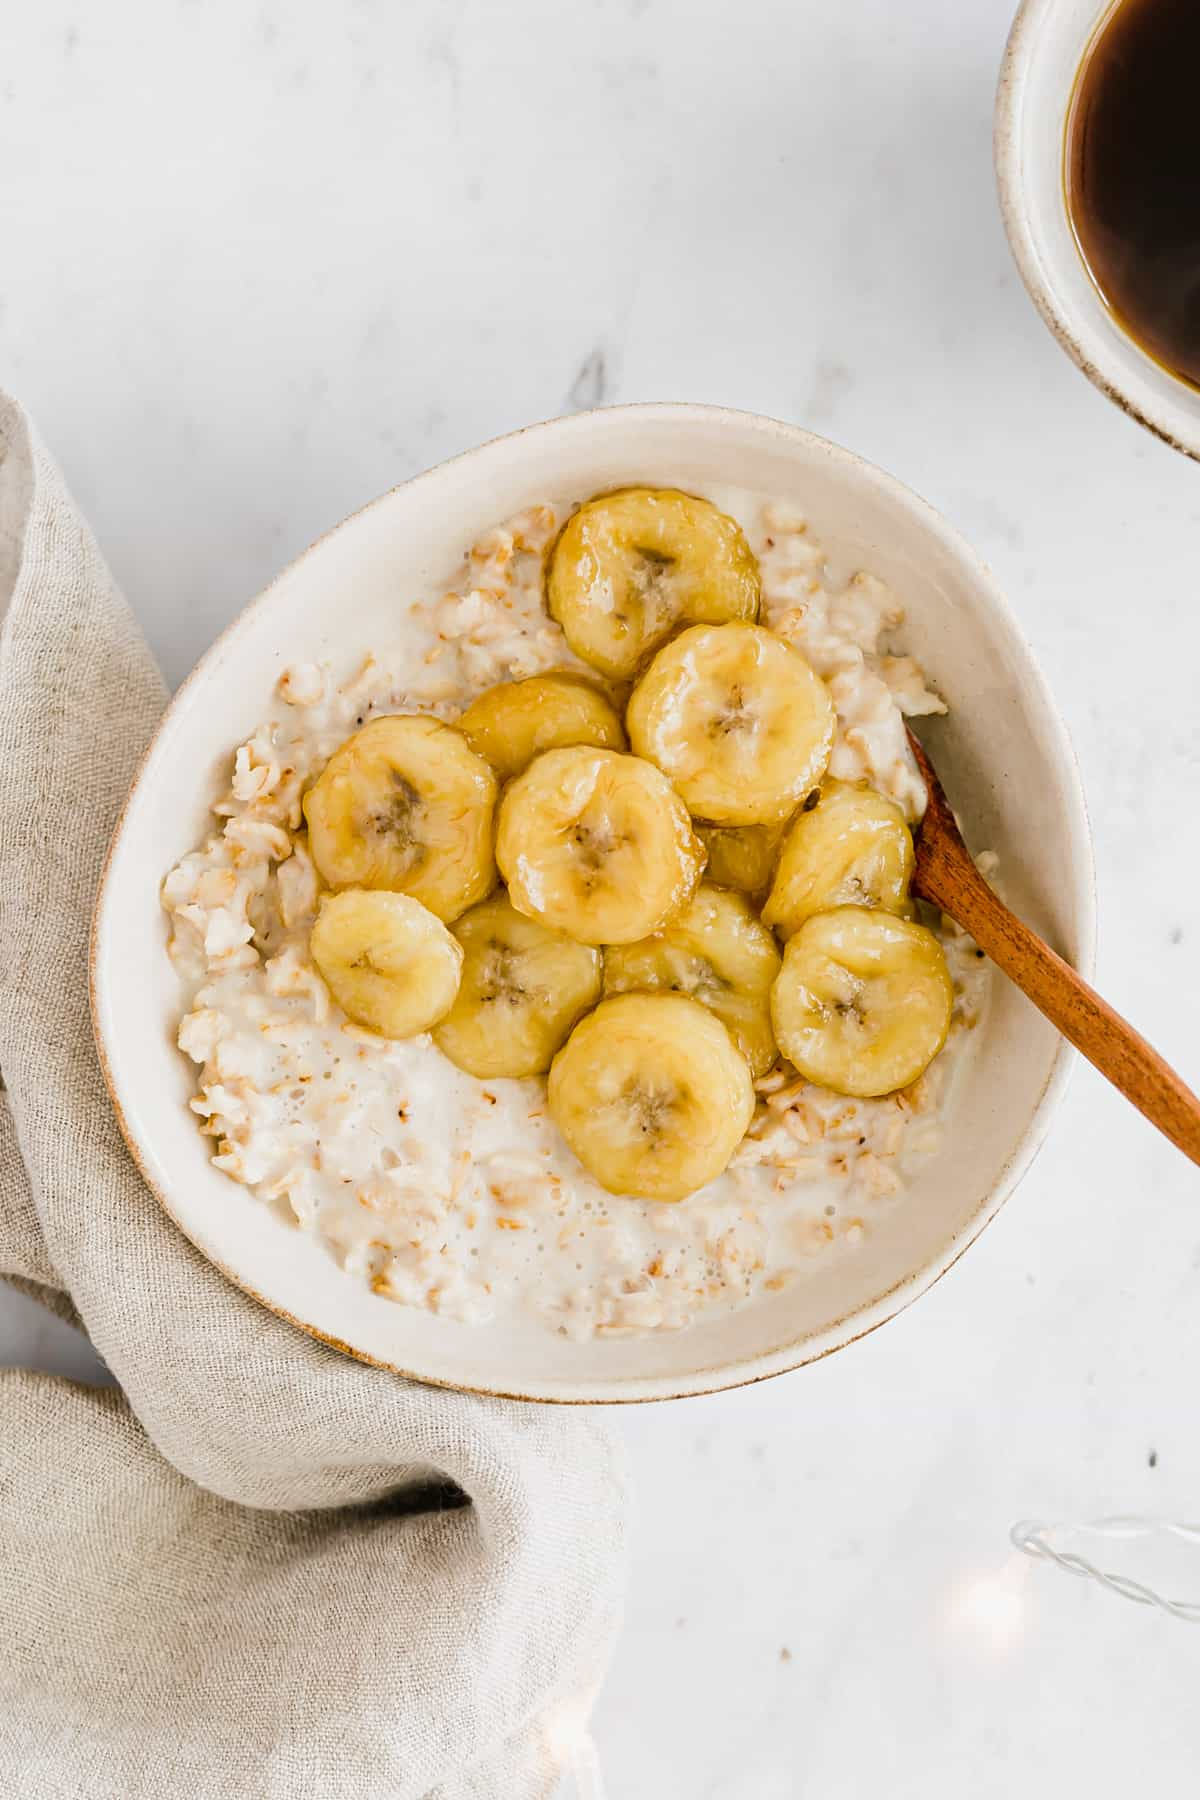 caramelized banana oatmeal in a bowl